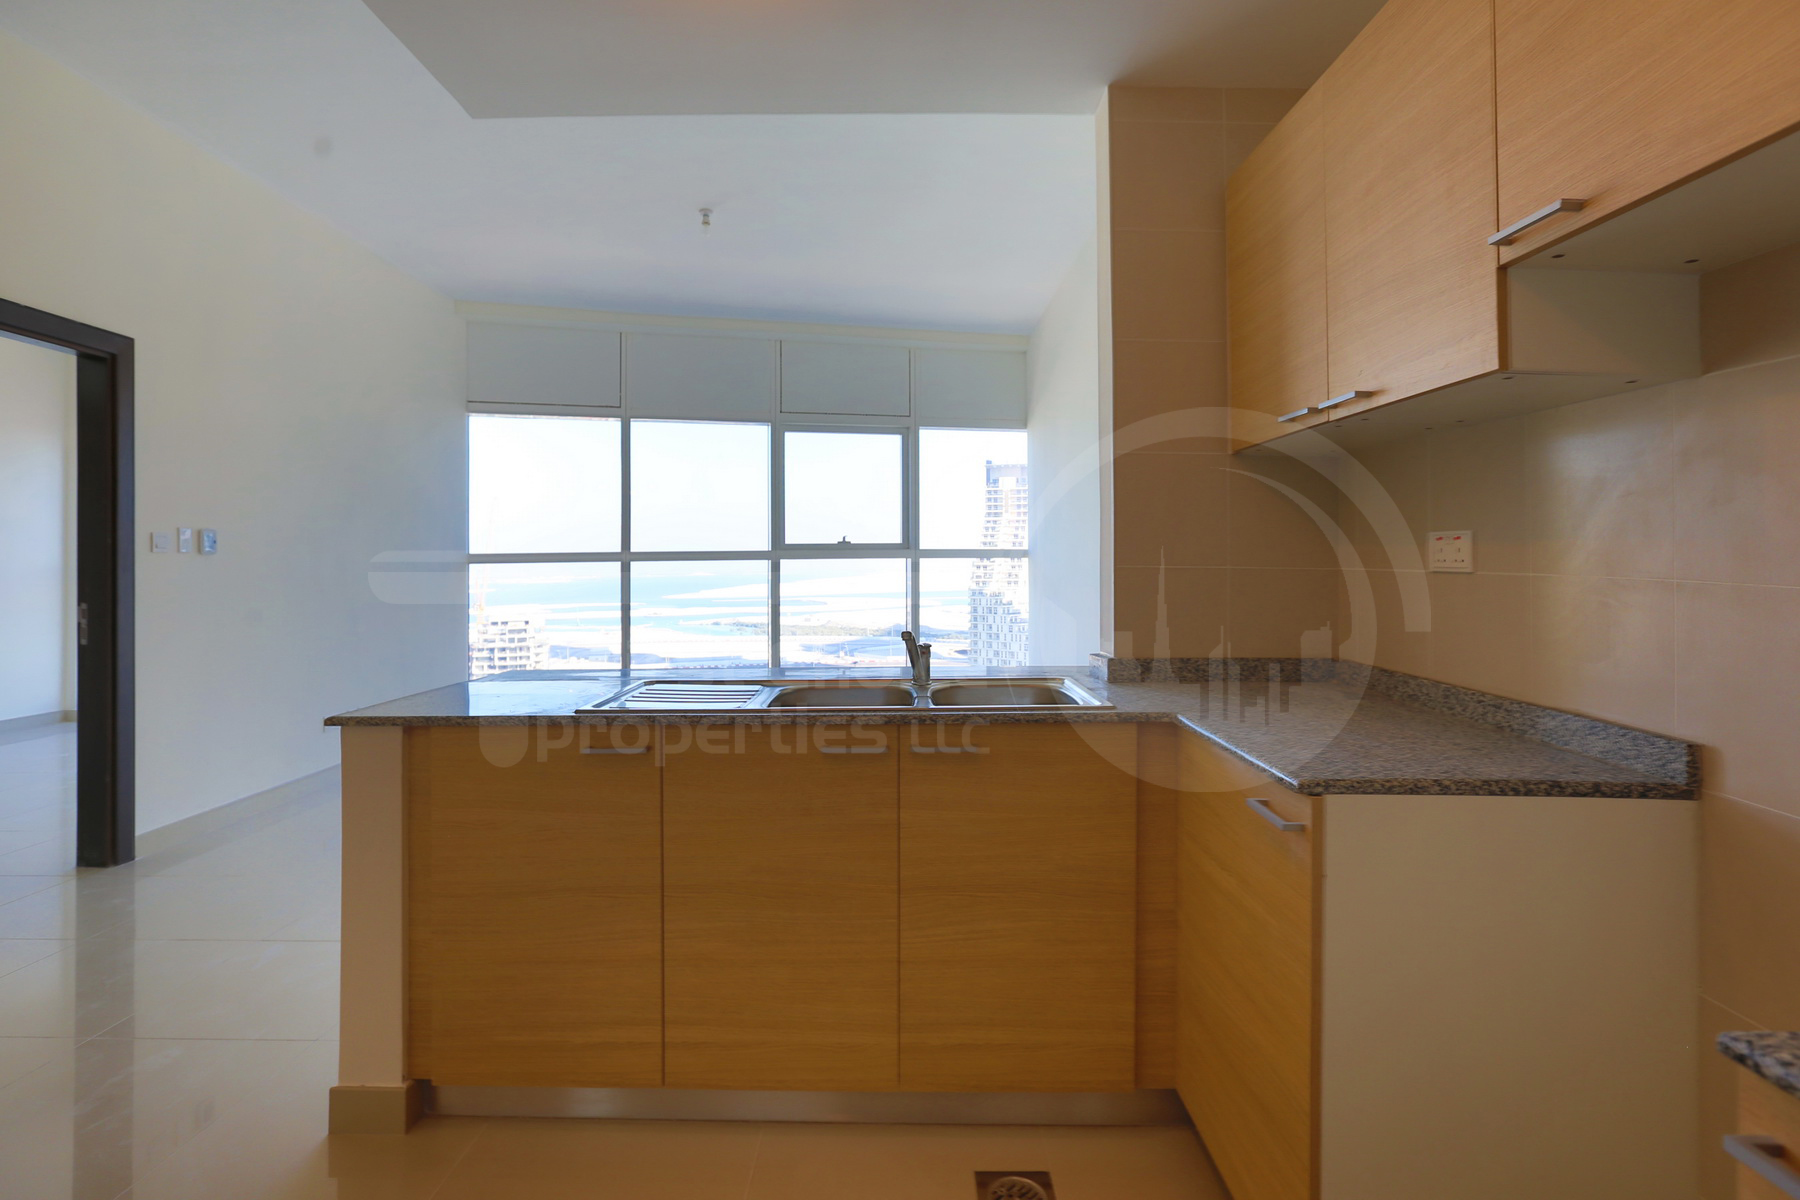 1BR Apartment - Abu Dhabi - UAE - Al Reem Island - City of Lights - C10 Building (8).JPG